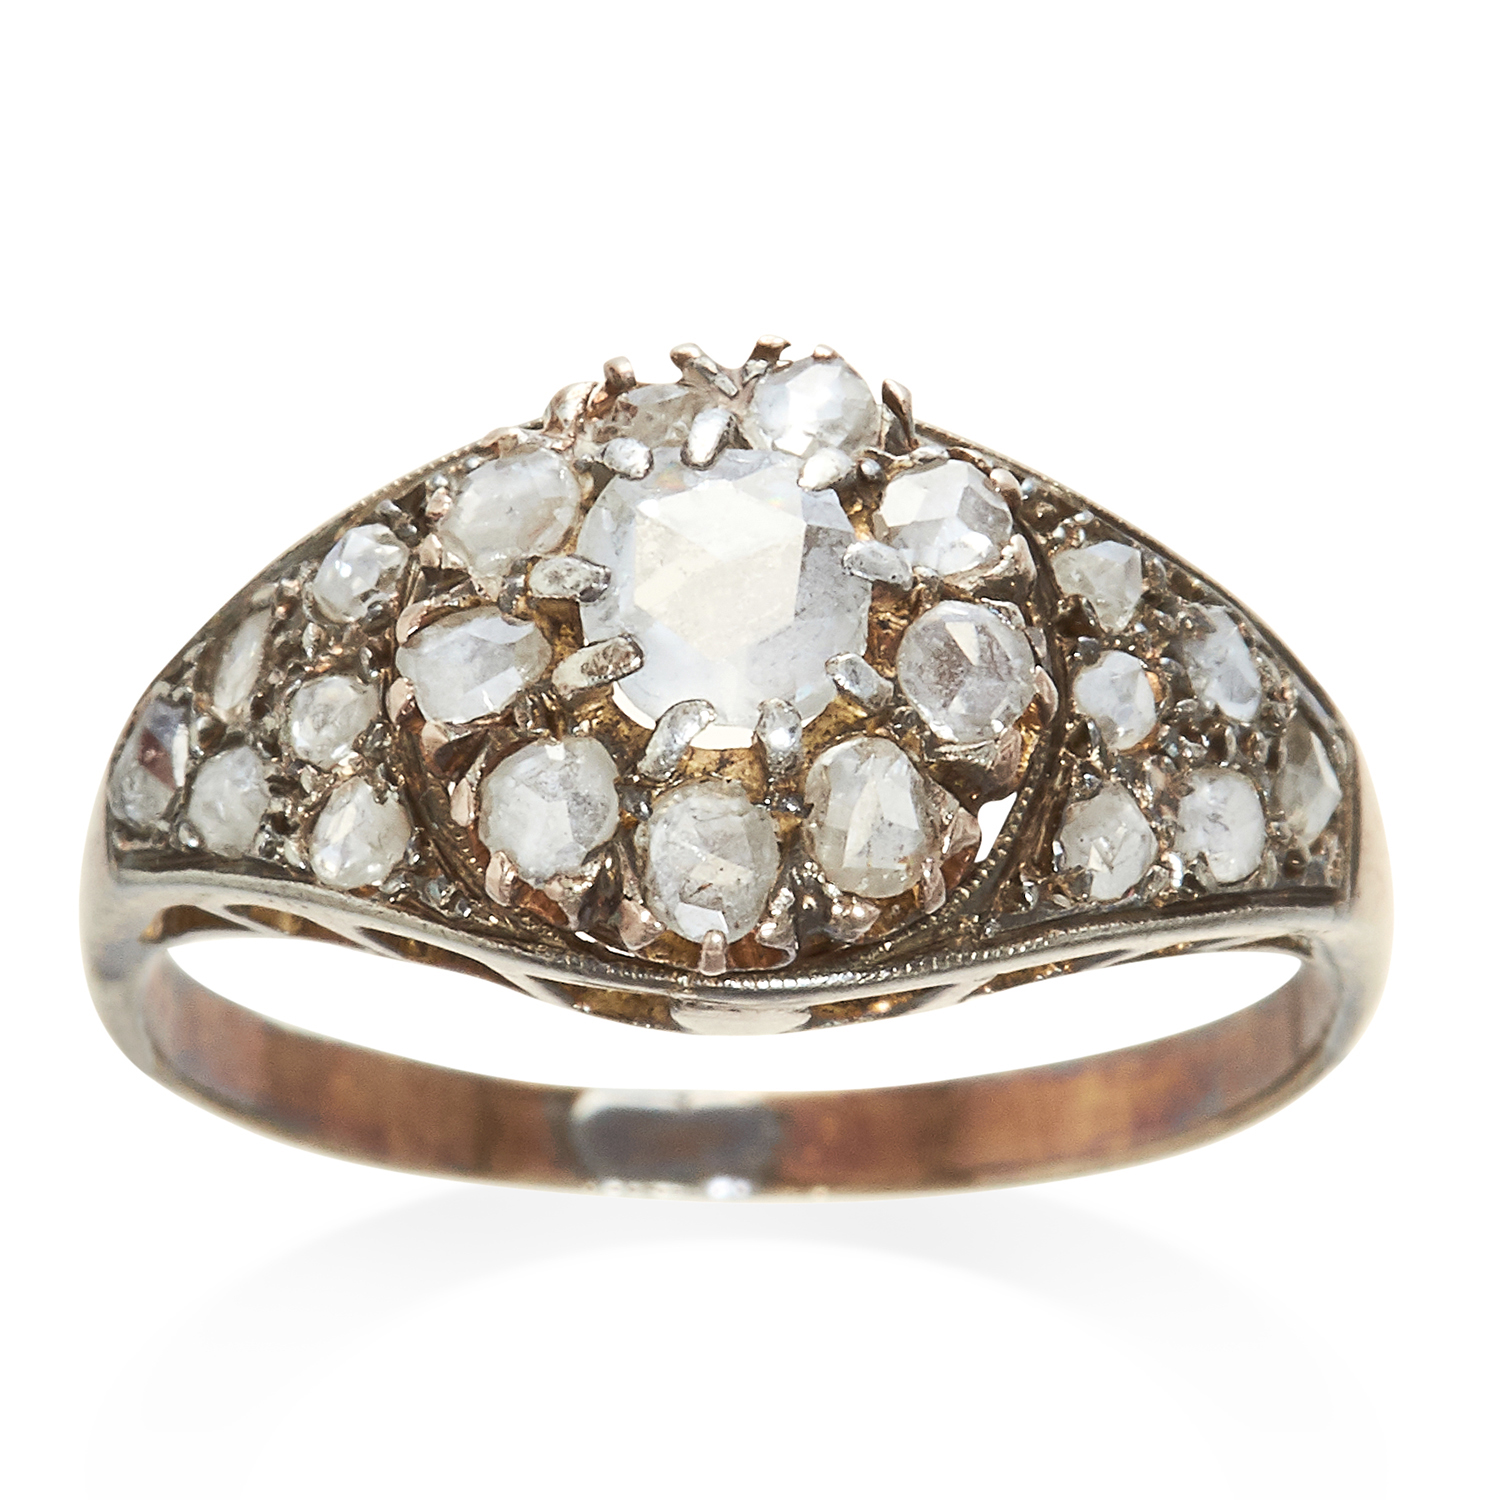 Los 359 - AN ANTIQUE DIAMOND CLUSTER RING in yellow gold, set with rose cut diamonds, unmarked, size N / 7,